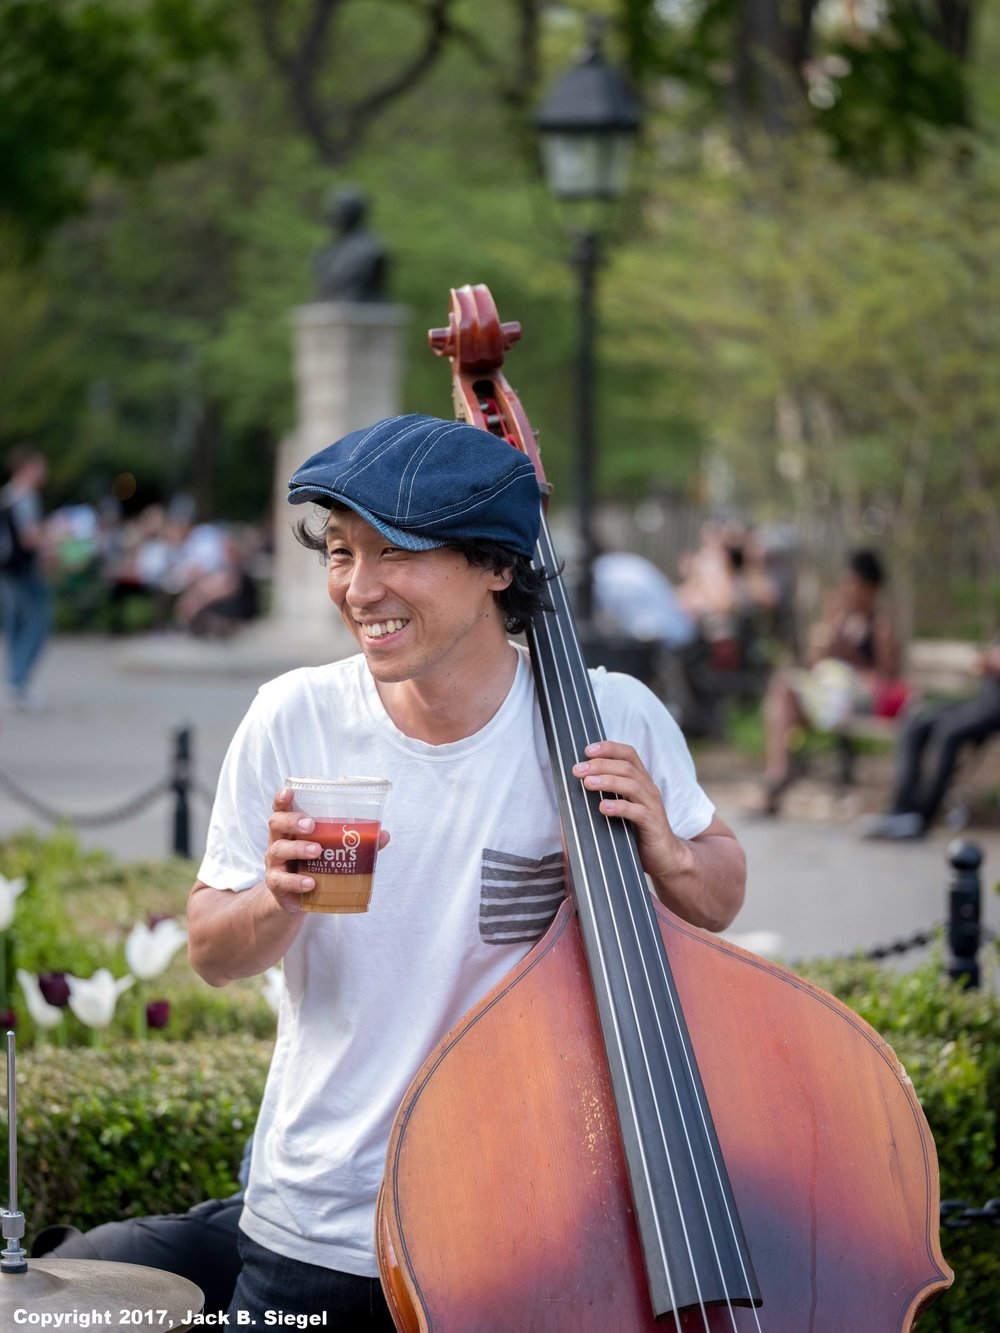 Ice Coffee and Bass in Washington Square Park